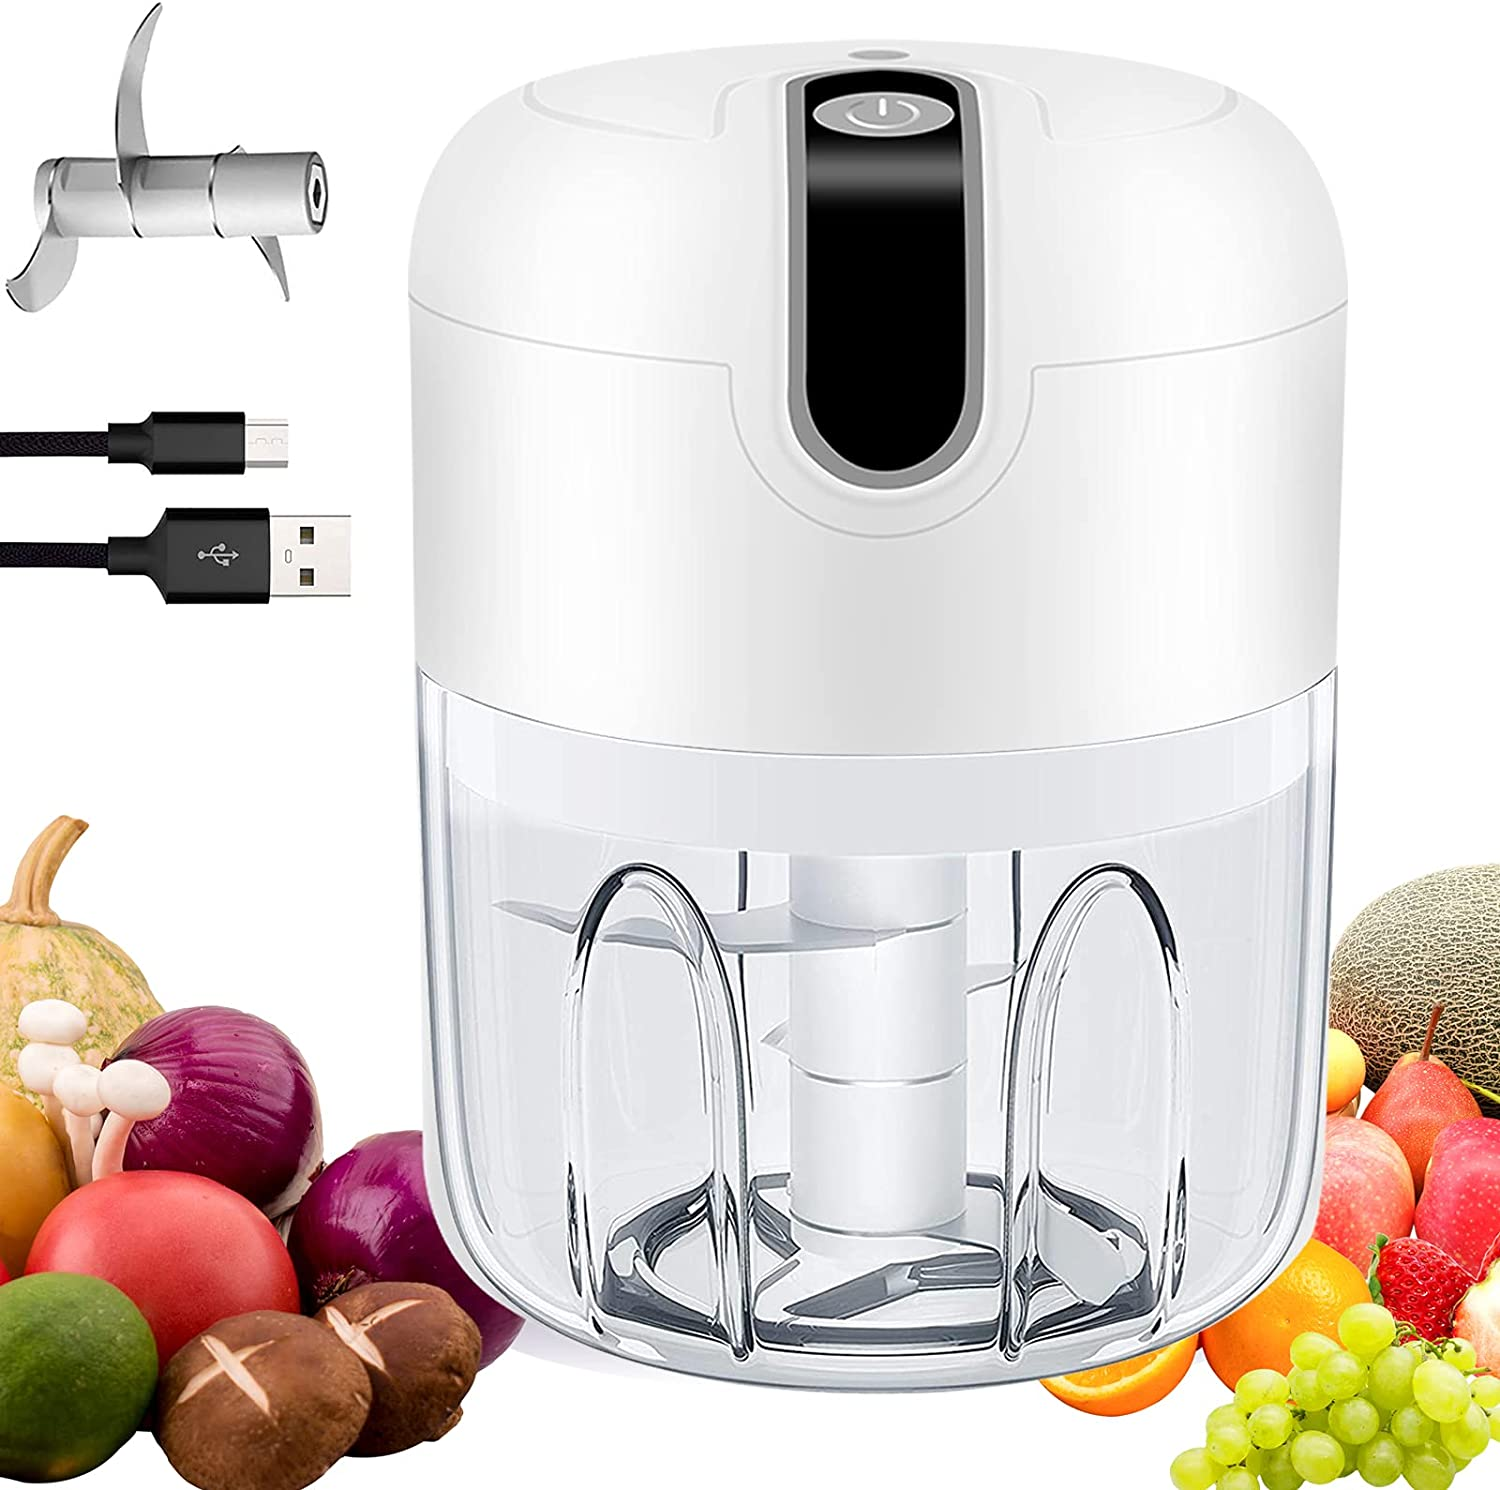 Electric Mini Food Chopper Wireless Mini Onion Cutter Vegetable Processor with Stainless Steel Blades, USB Portable Food Mincer for Garlic, Salad, Chili, Ginger, Meat, Baby Food (250ml)